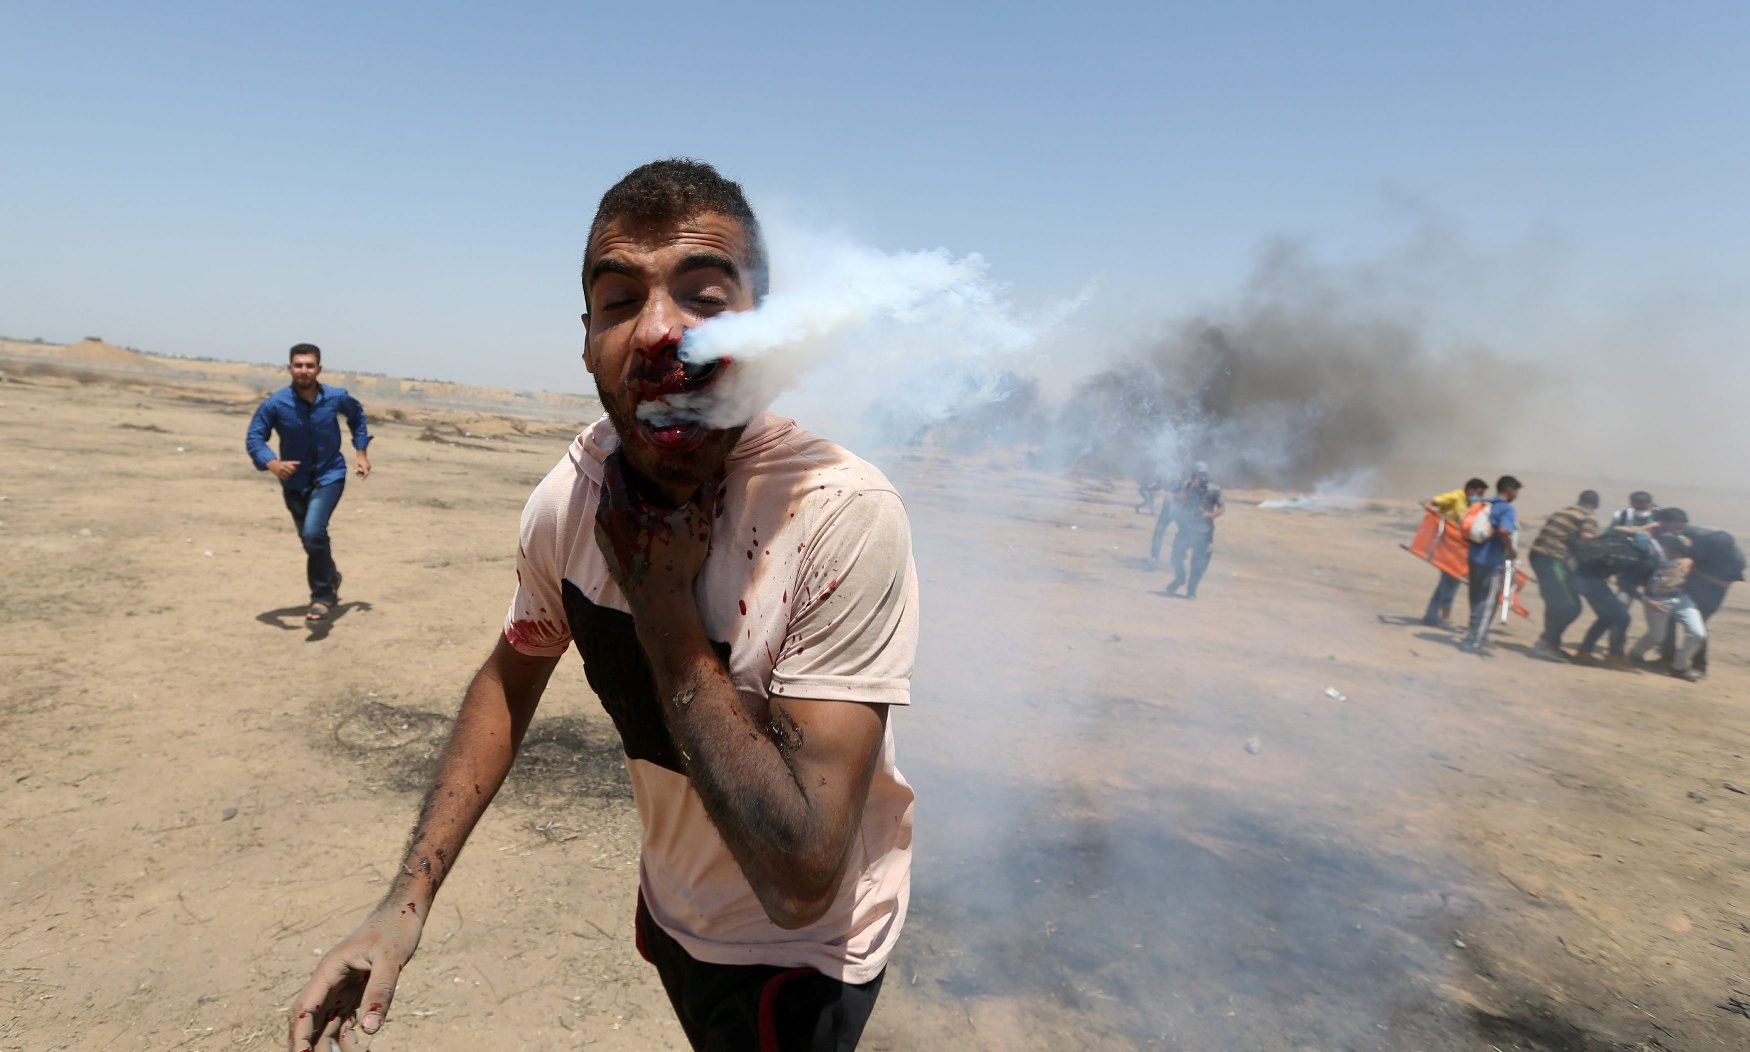 ATTENTION EDITORS - VISUAL COVERAGE OF SCENES OF INJURY OR DEATH A wounded Palestinian demonstrator reacts as he is hit in the face with a tear gas canister fired by Israeli troops during a protest marking al-Quds Day, (Jerusalem Day), at the Israel-Gaza border in the southern Gaza Strip June 8, 2018. REUTERS/Ibraheem Abu Mustafa TEMPLATE OUT     TPX IMAGES OF THE DAY